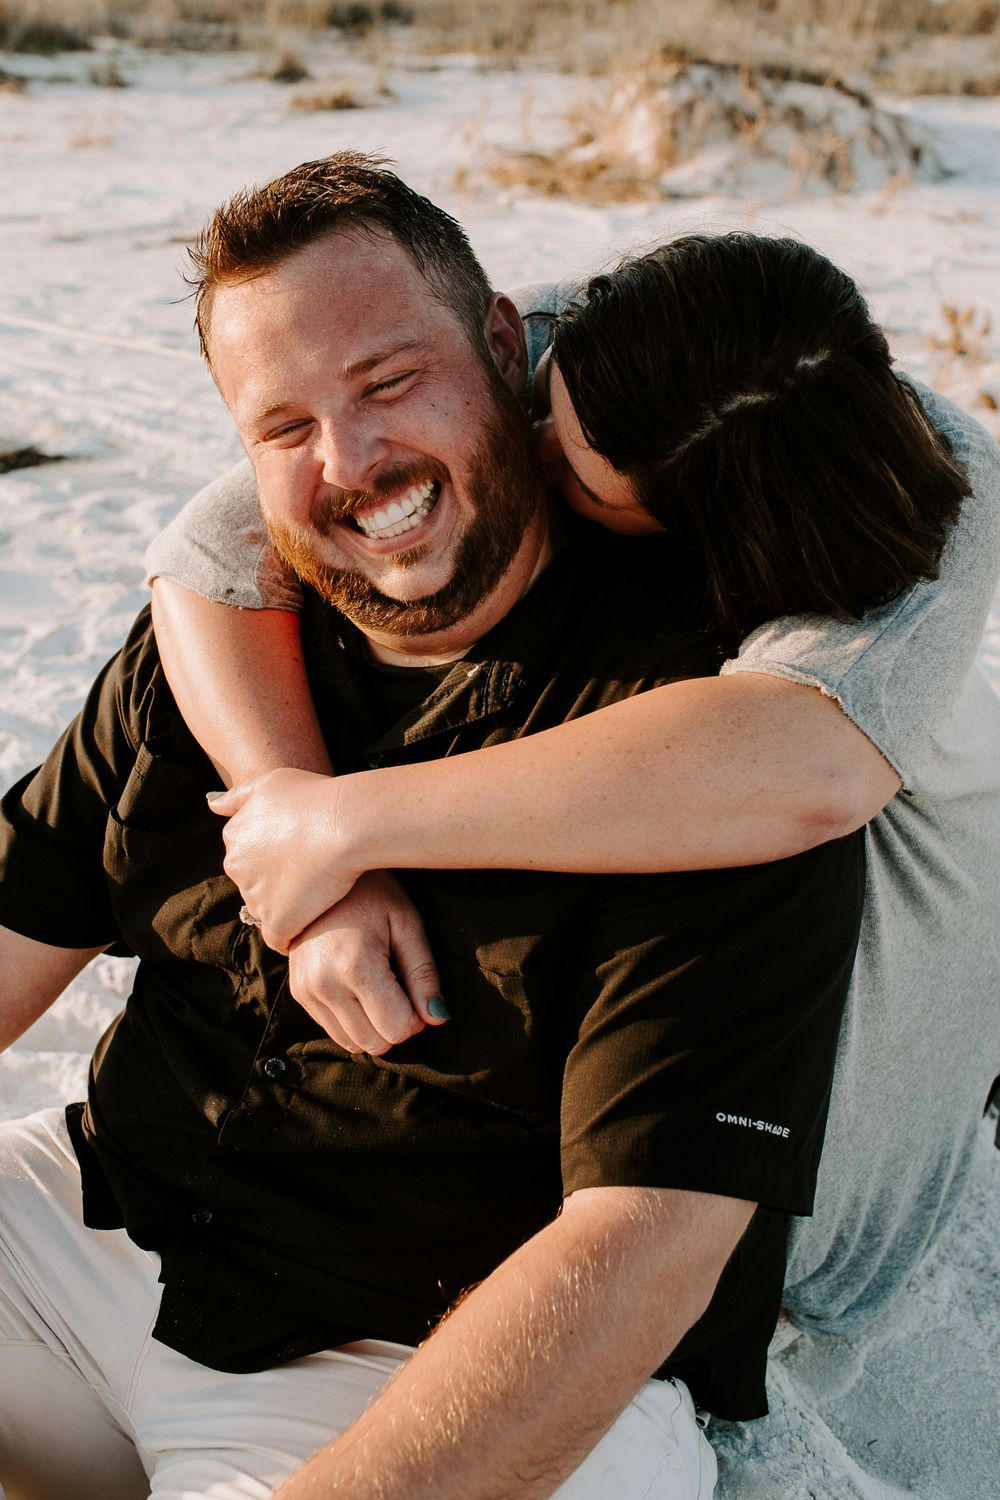 man laughing as his fiancé kisses him on the cheek during their north Florida engagement